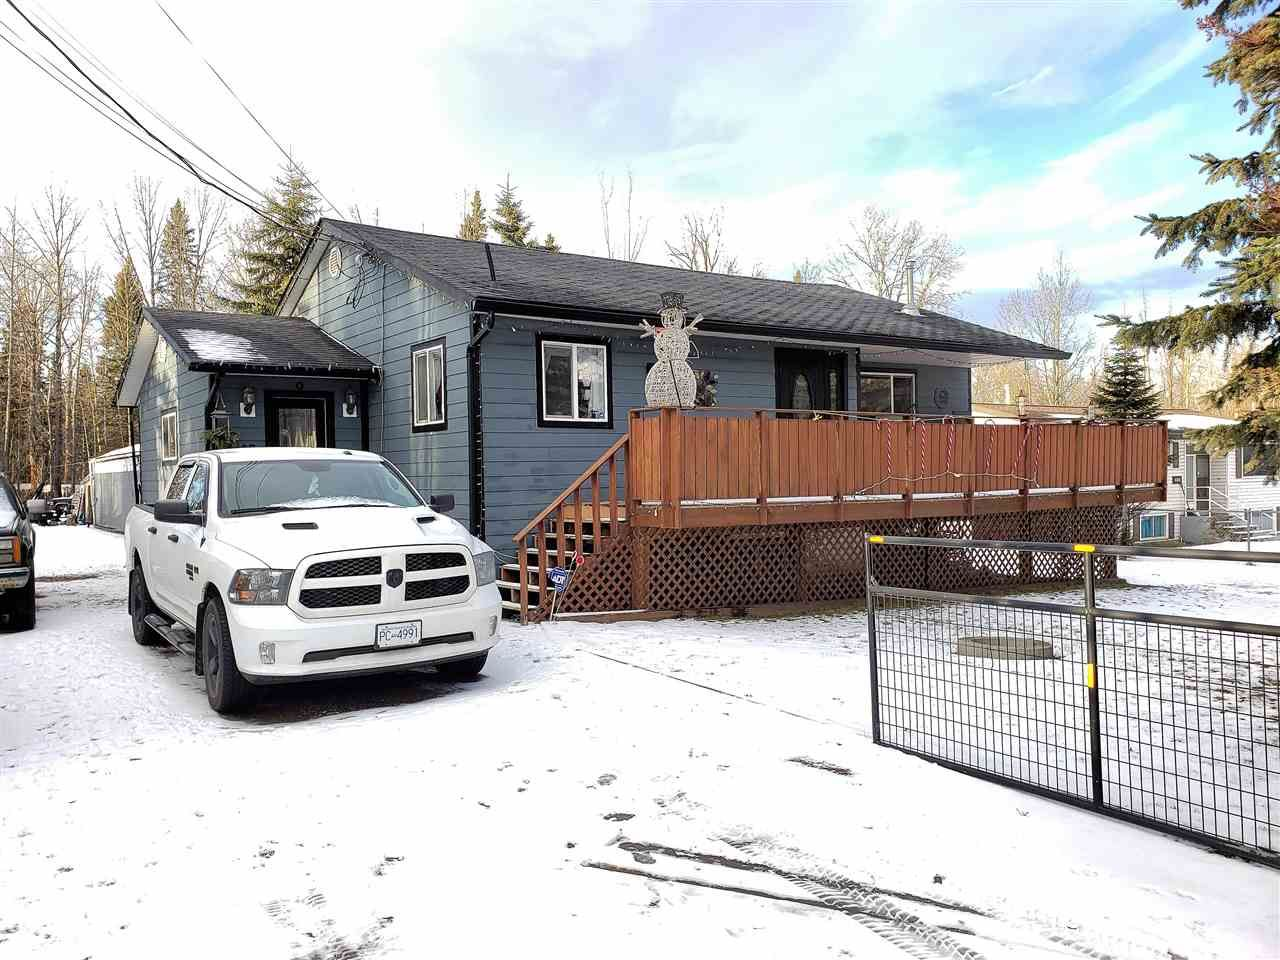 Main Photo: 6407 W 16 Highway in Prince George: Beaverley House for sale (PG Rural West (Zone 77))  : MLS®# R2530221